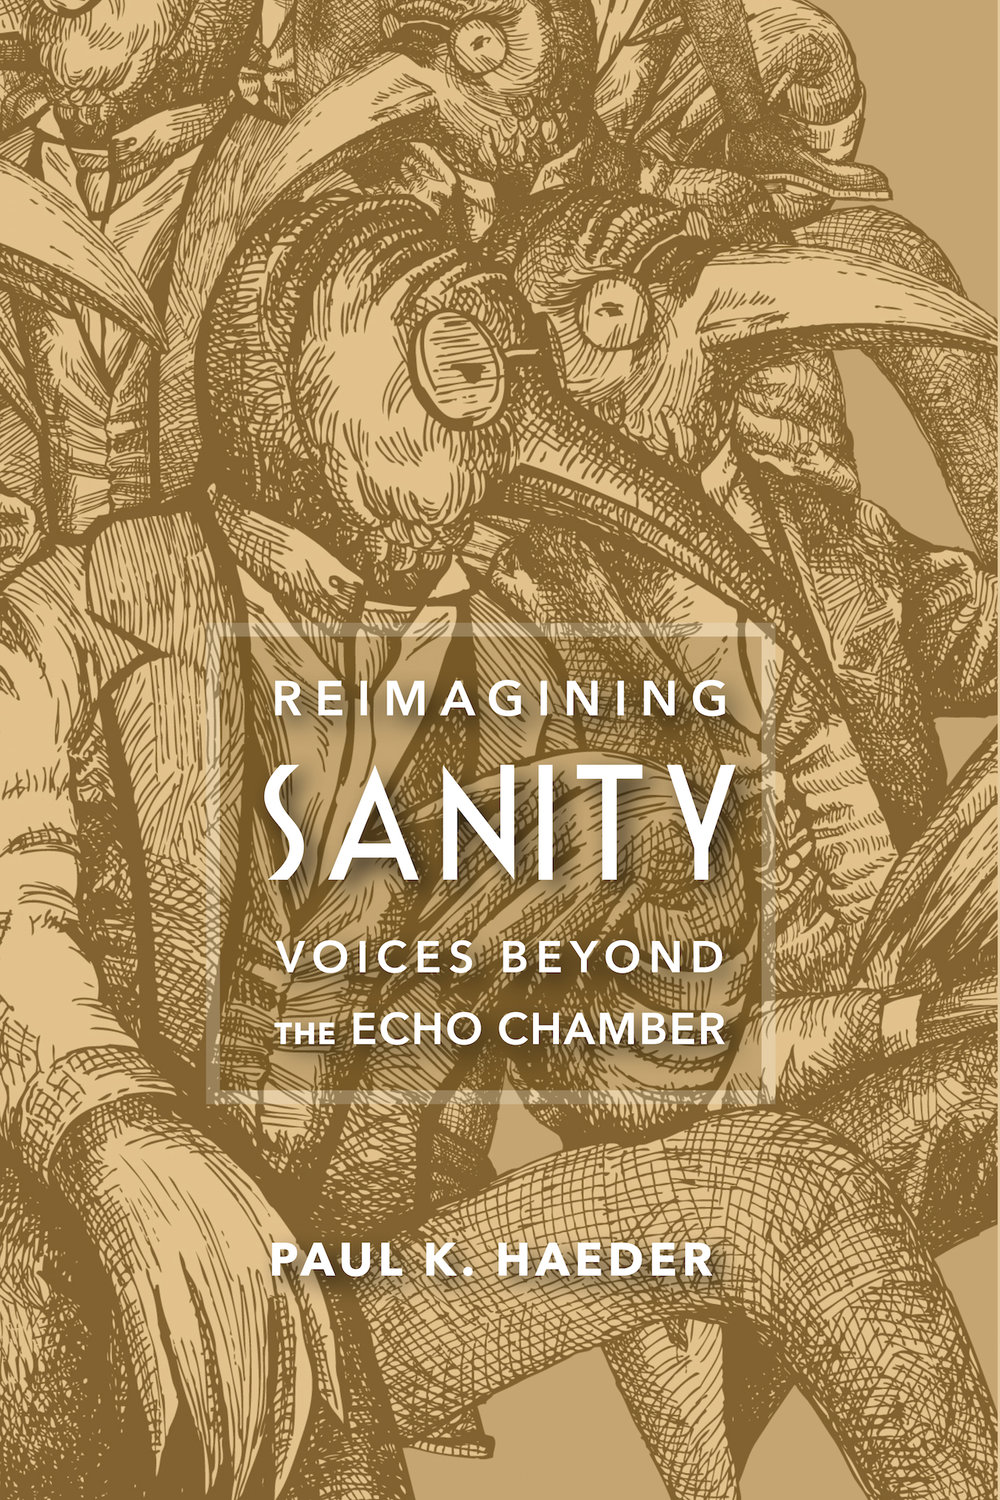 Reimagining Sanity - FrontCover - FINAL copy.jpg